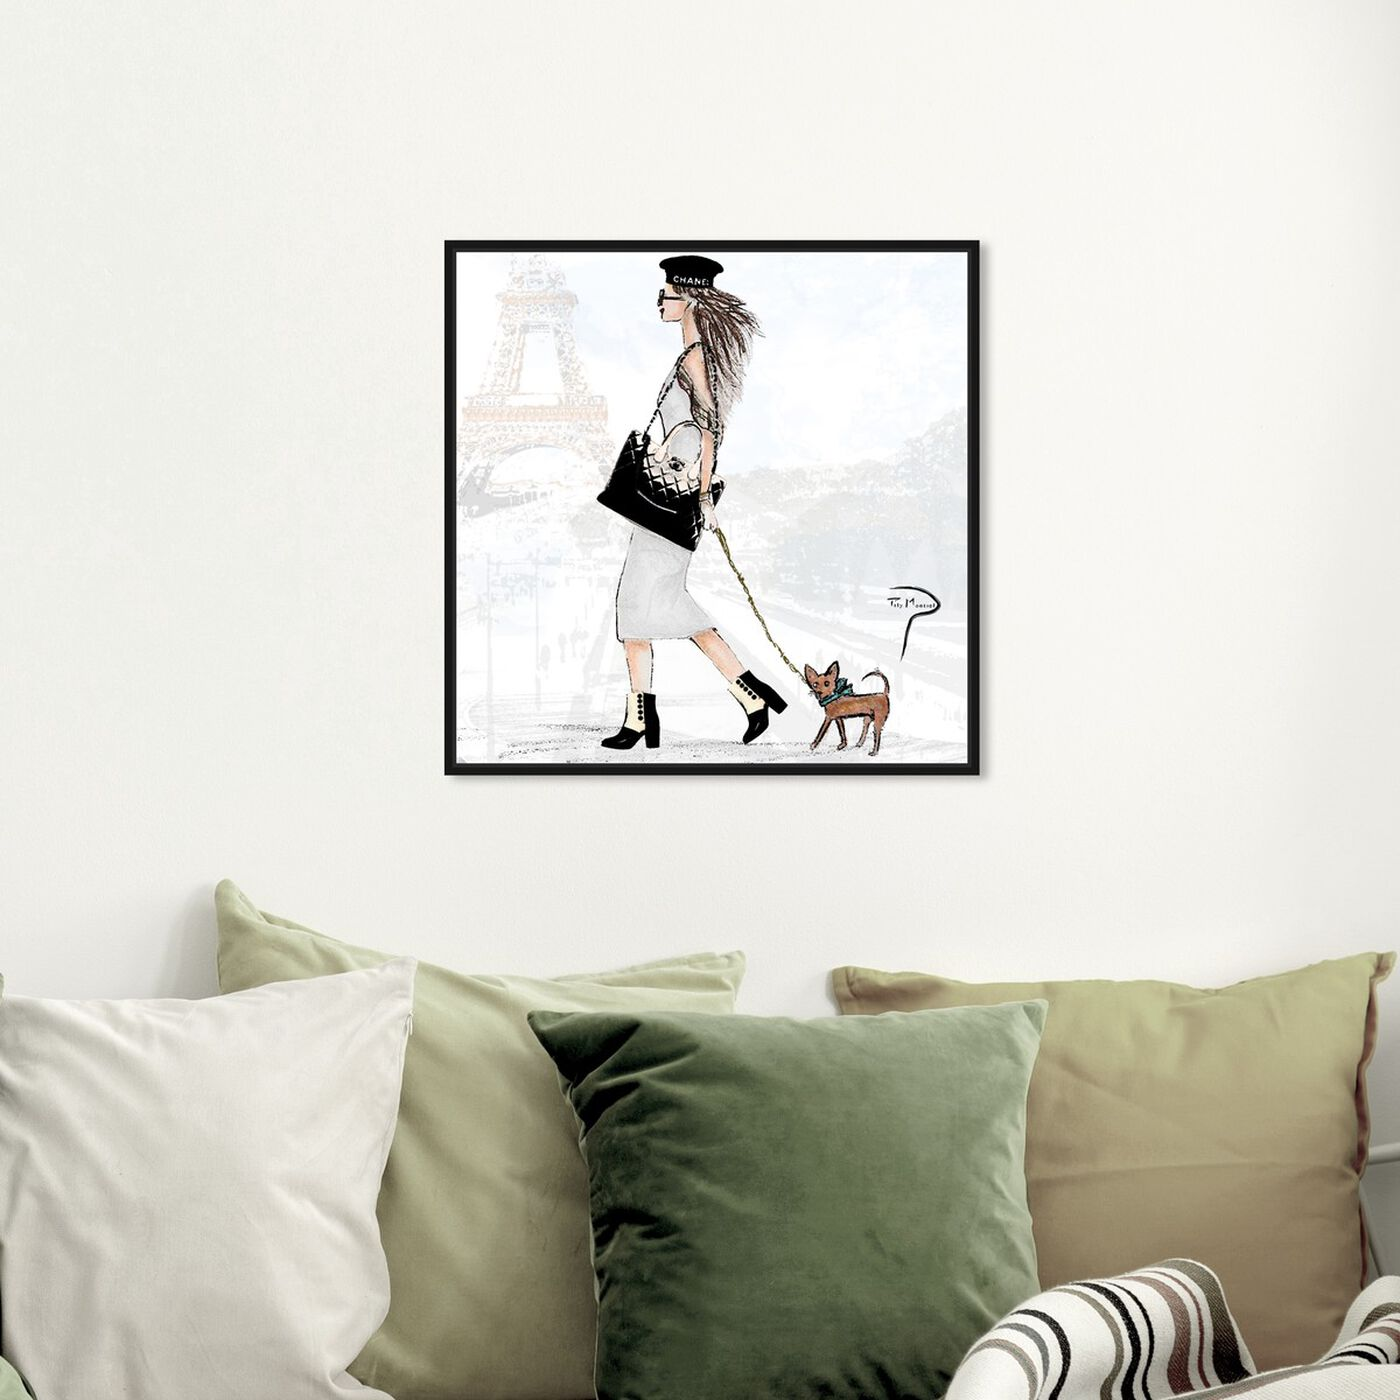 Hanging view of Pily Montiel - National puppy day featuring fashion and glam and outfits art.